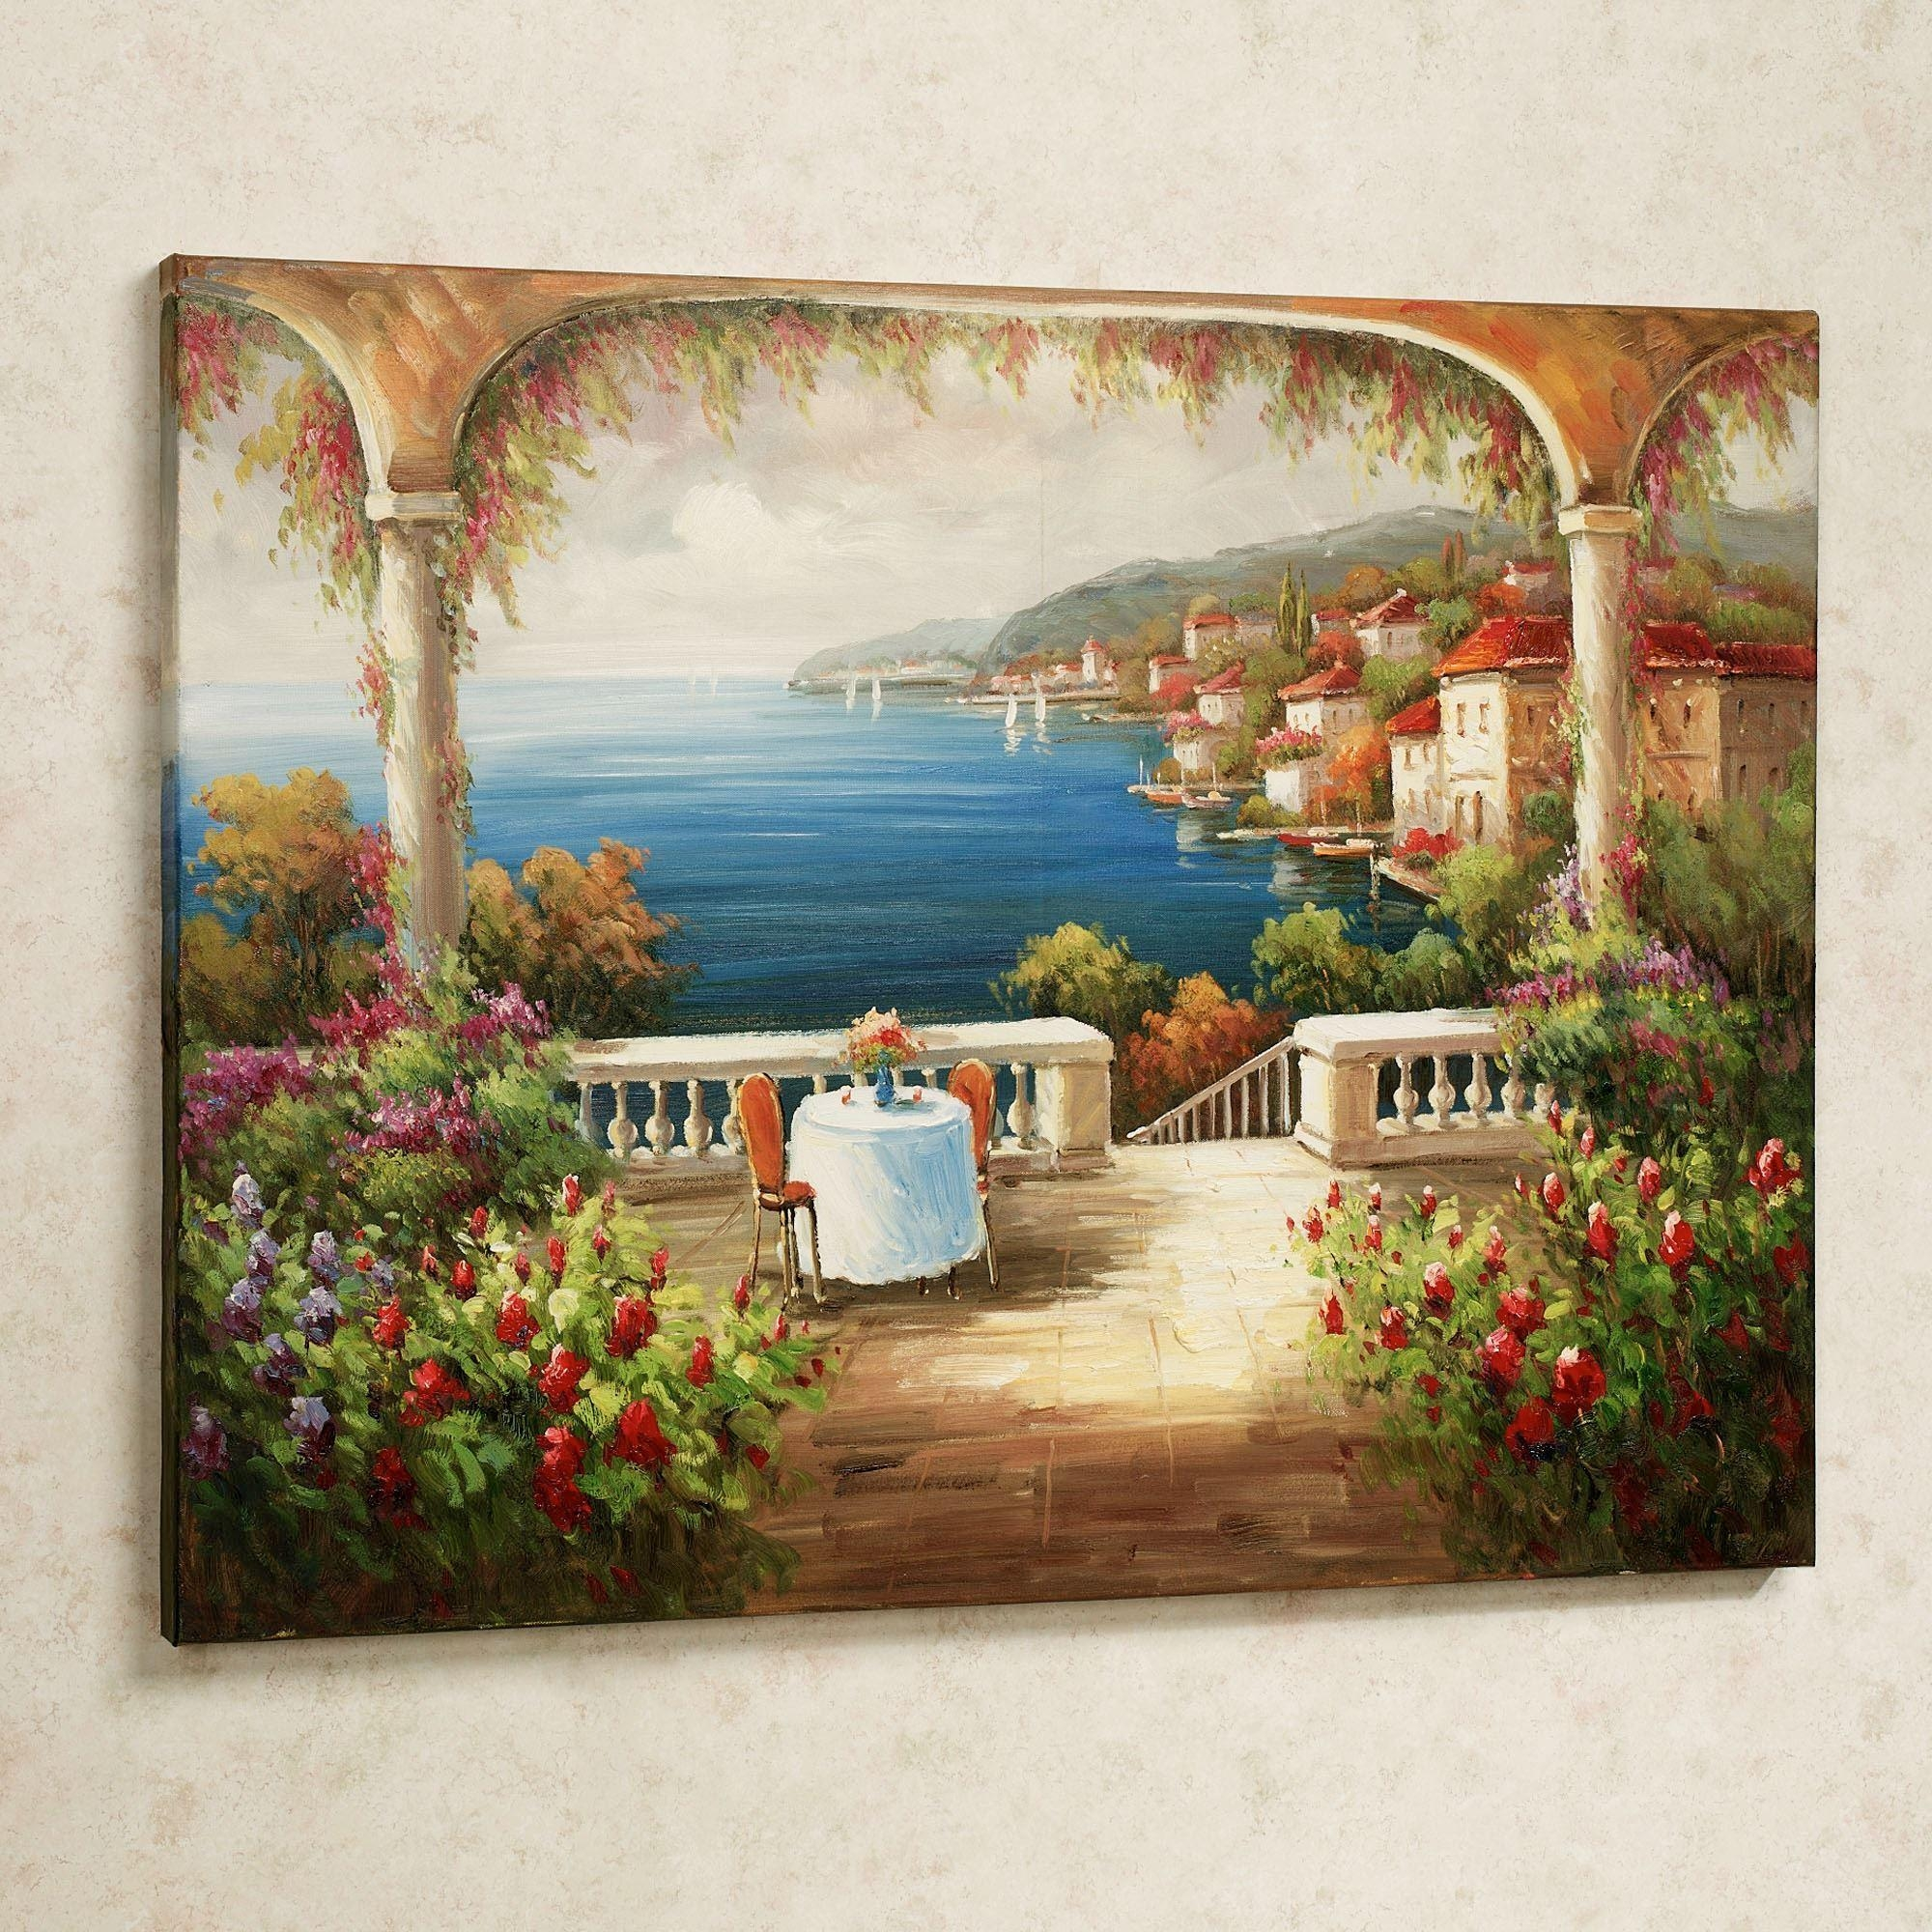 Lunch With A View Handpainted Canvas Art Inside Tuscany Wall Art (View 5 of 20)